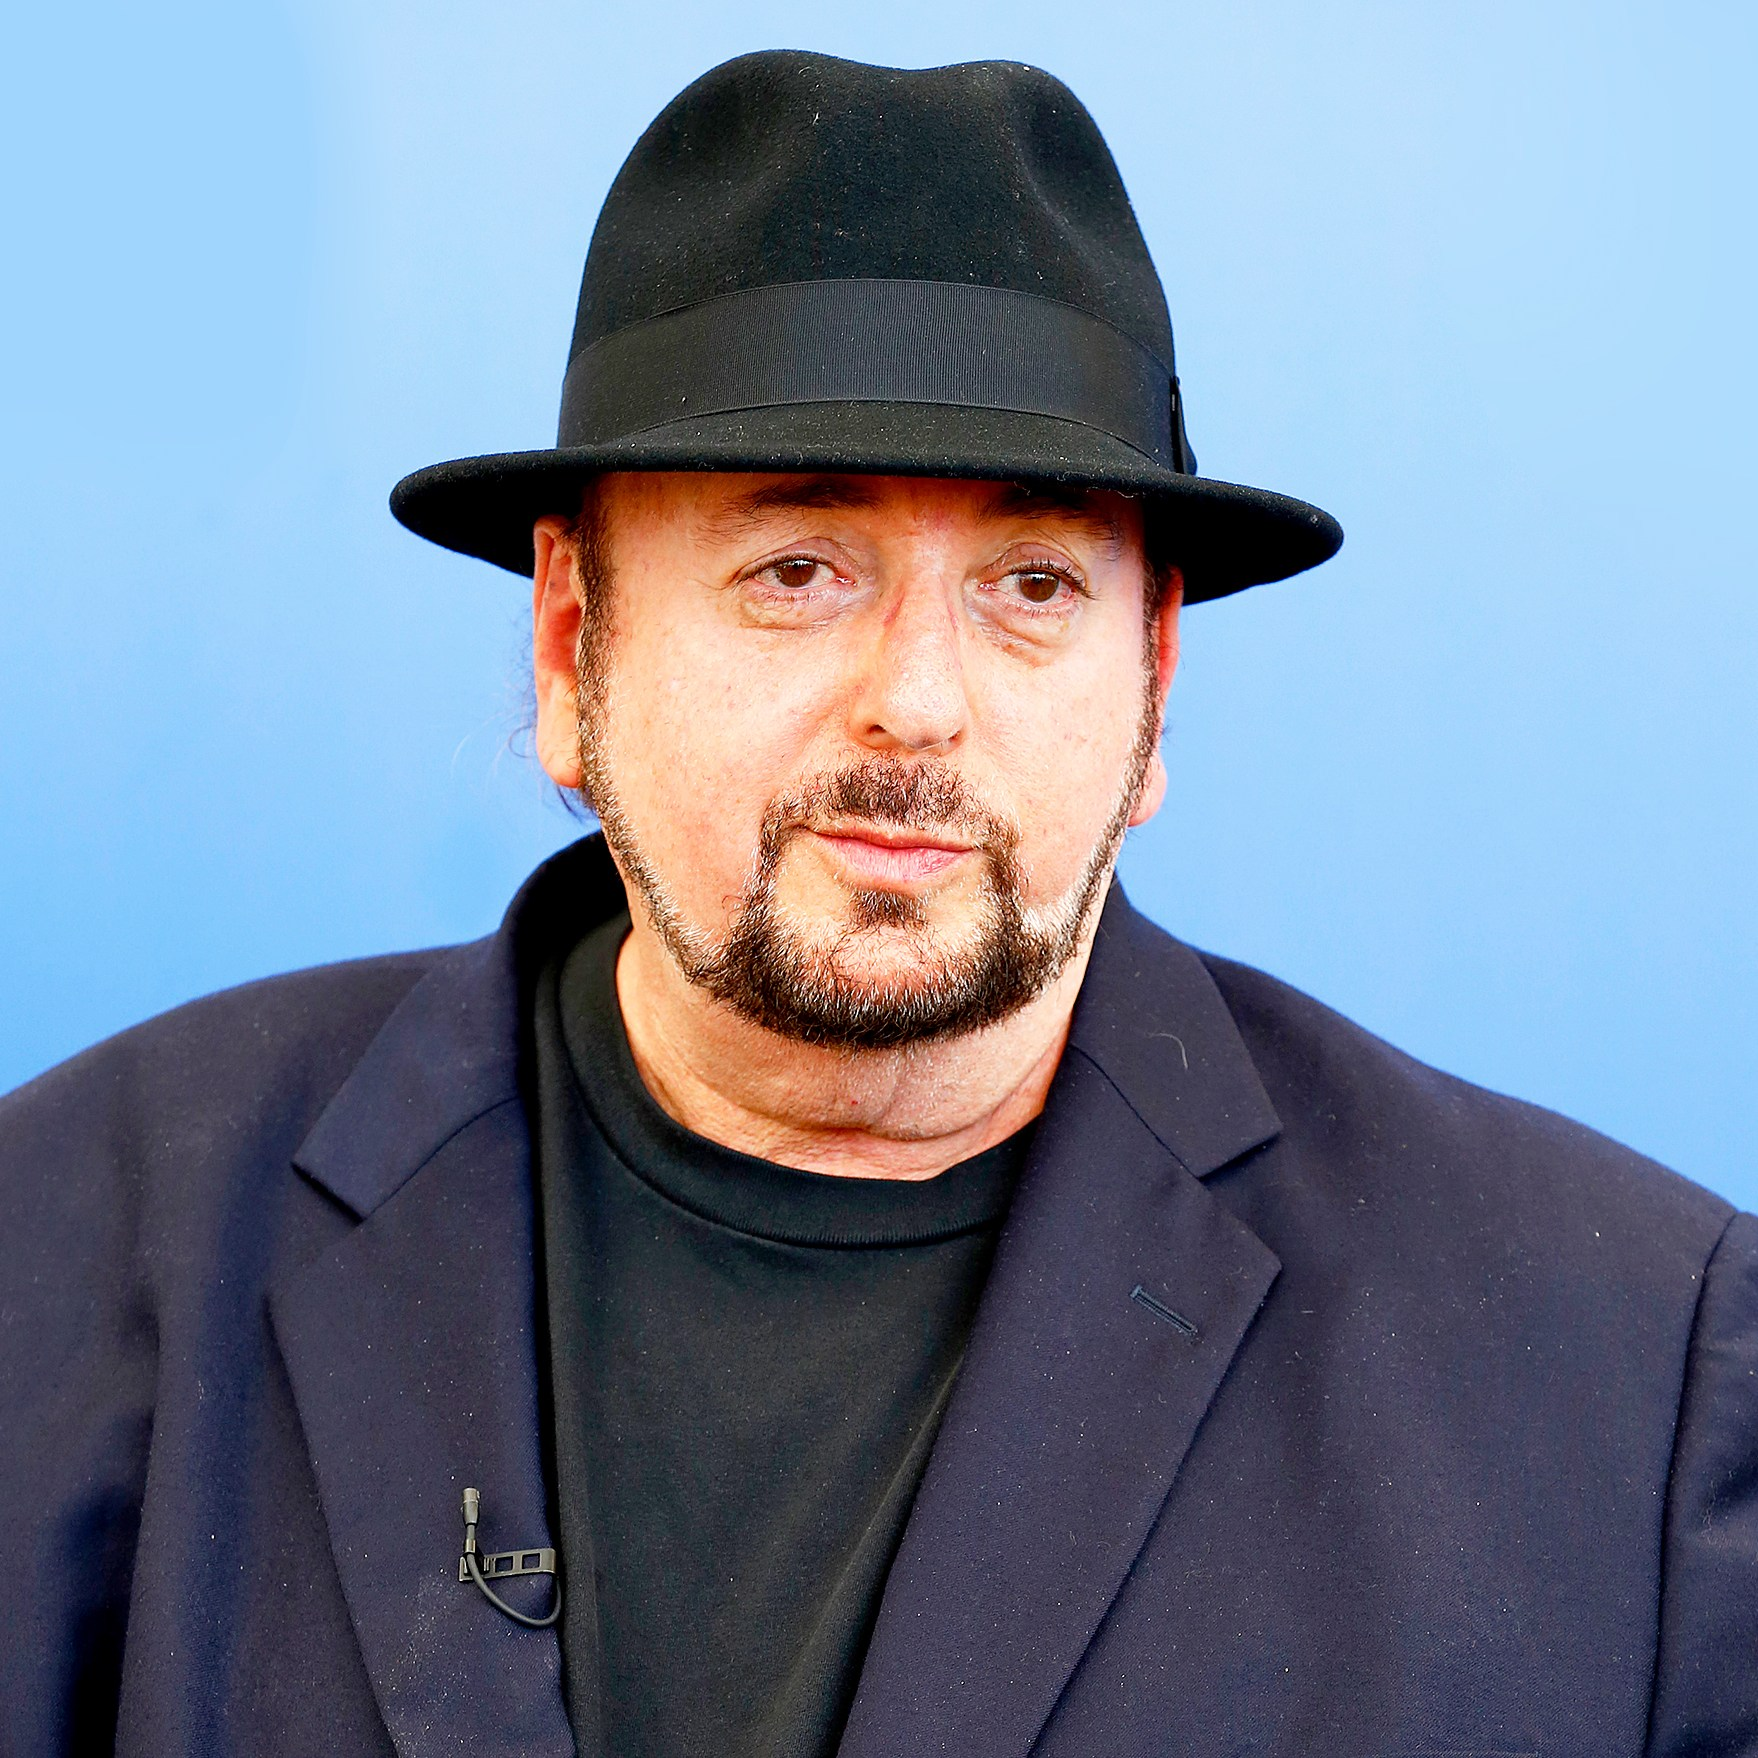 James Toback attends the 74th Venice Film Festival on September 3, 2017 in Venice, Italy.